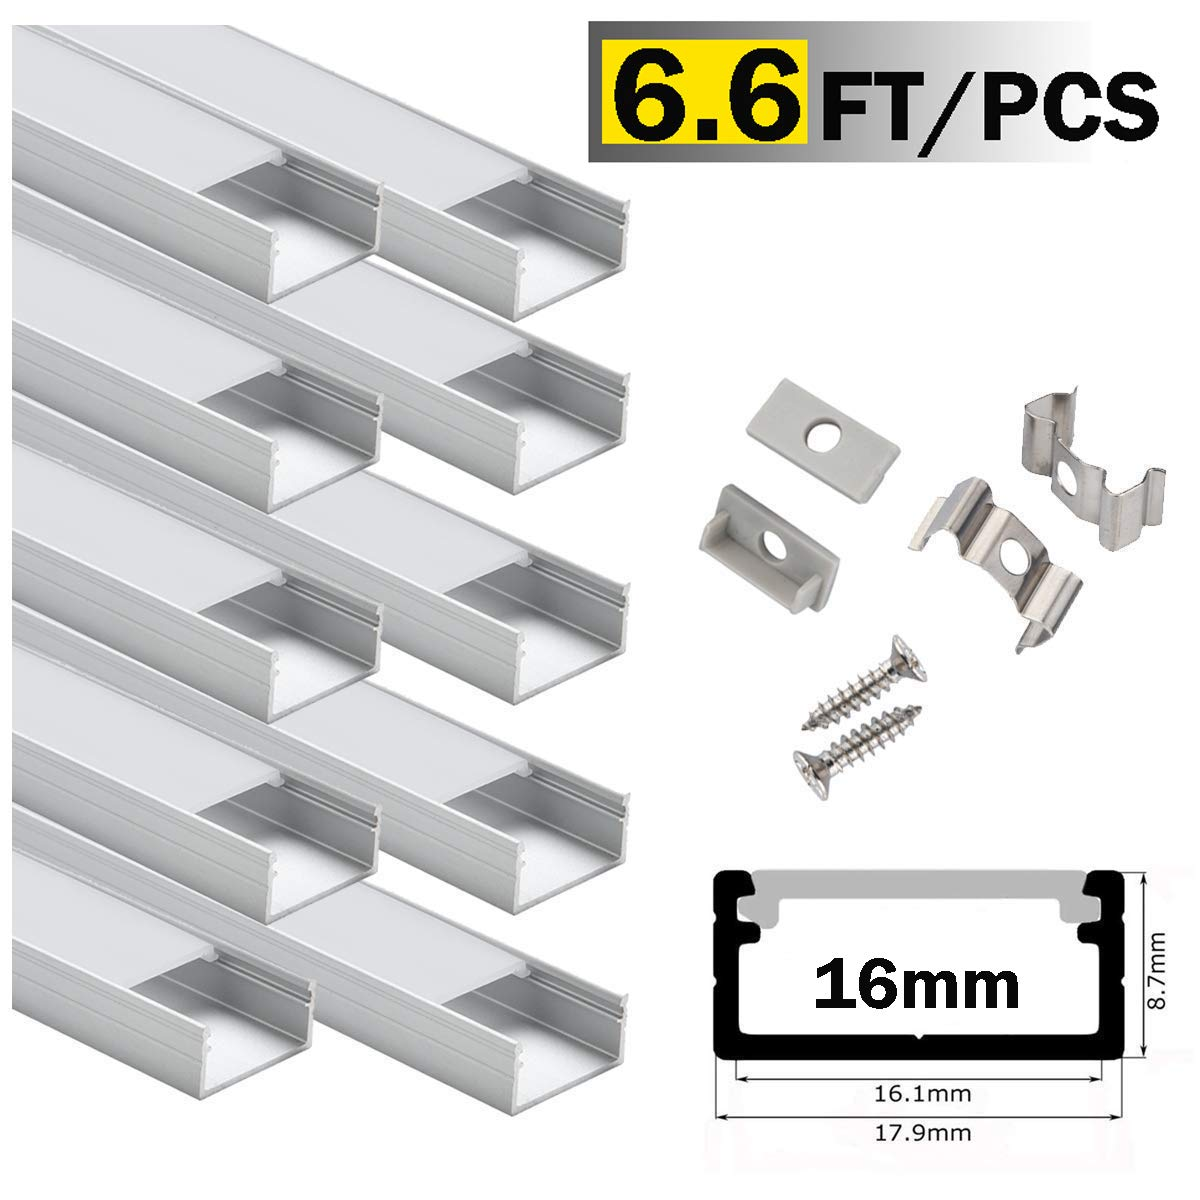 LED Aluminum Channel Wide 2m/6.6ft,StarlandLed Aluminum Profile 10-Pack with Complete Mounting Accessories for up to 16mm LED Strip Light, Perfectly Suit for Philips Hue LightStrip Plus